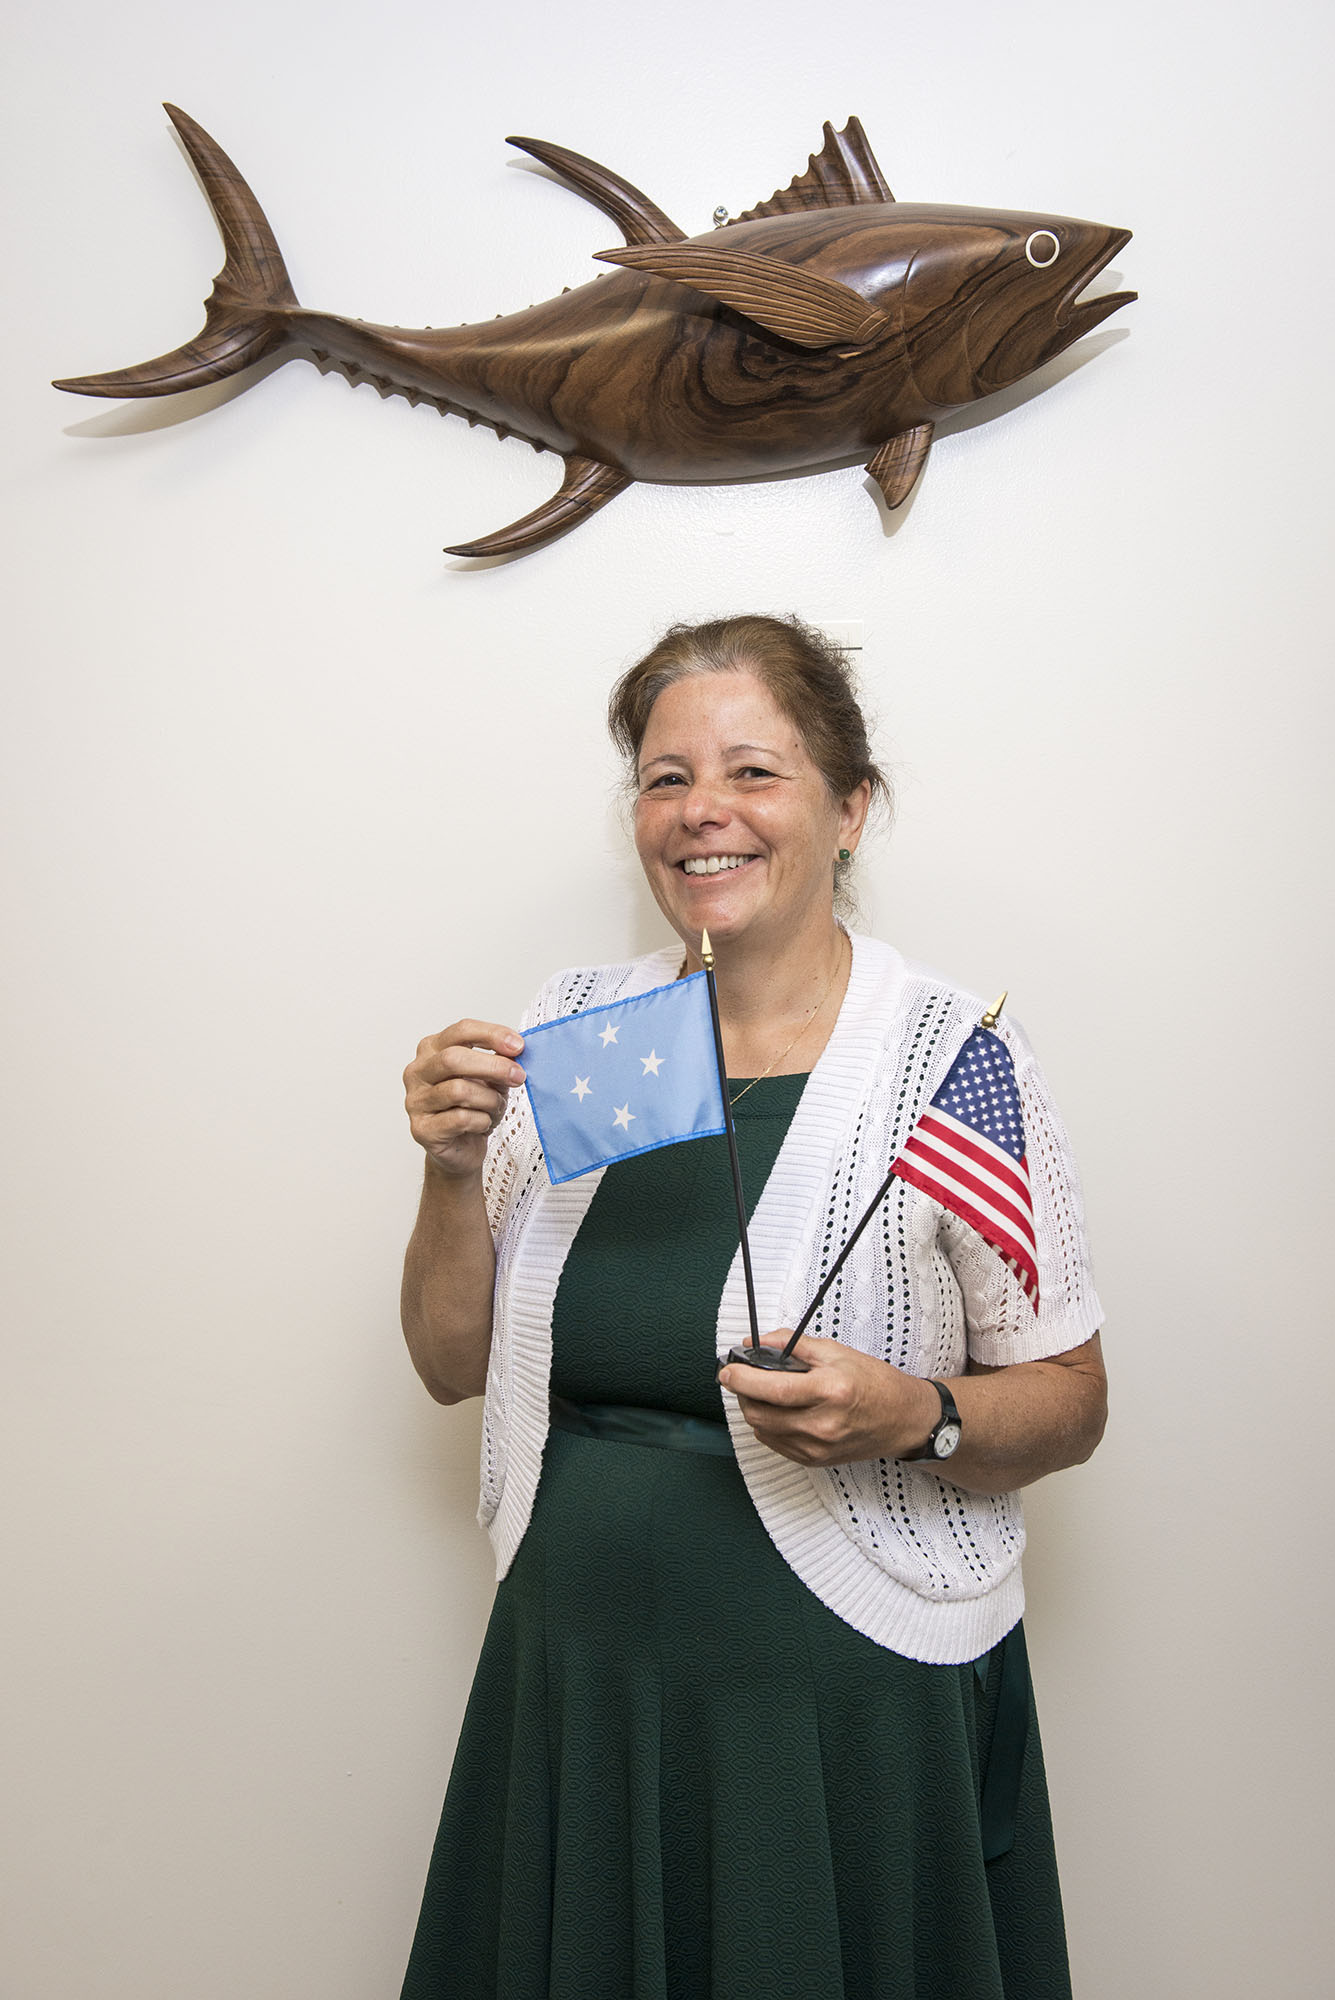 <p>Doria Rosen is the U.S. ambassador to the Federated States.The embassy is located on Pohnpei.</p>